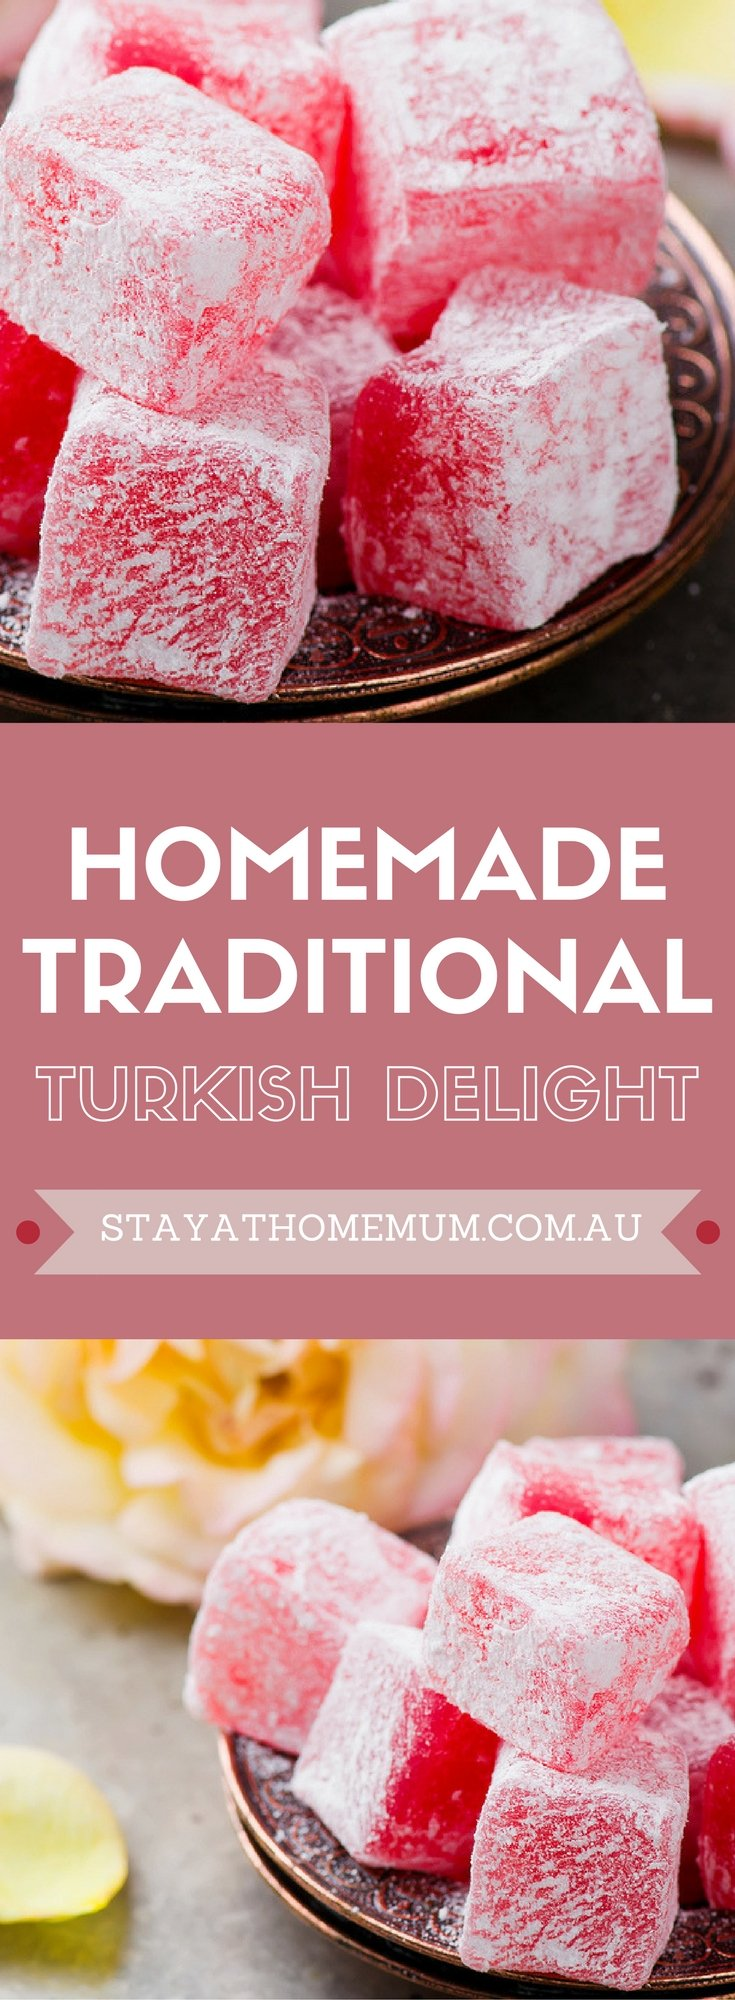 Homemade Traditional Turkish Delight